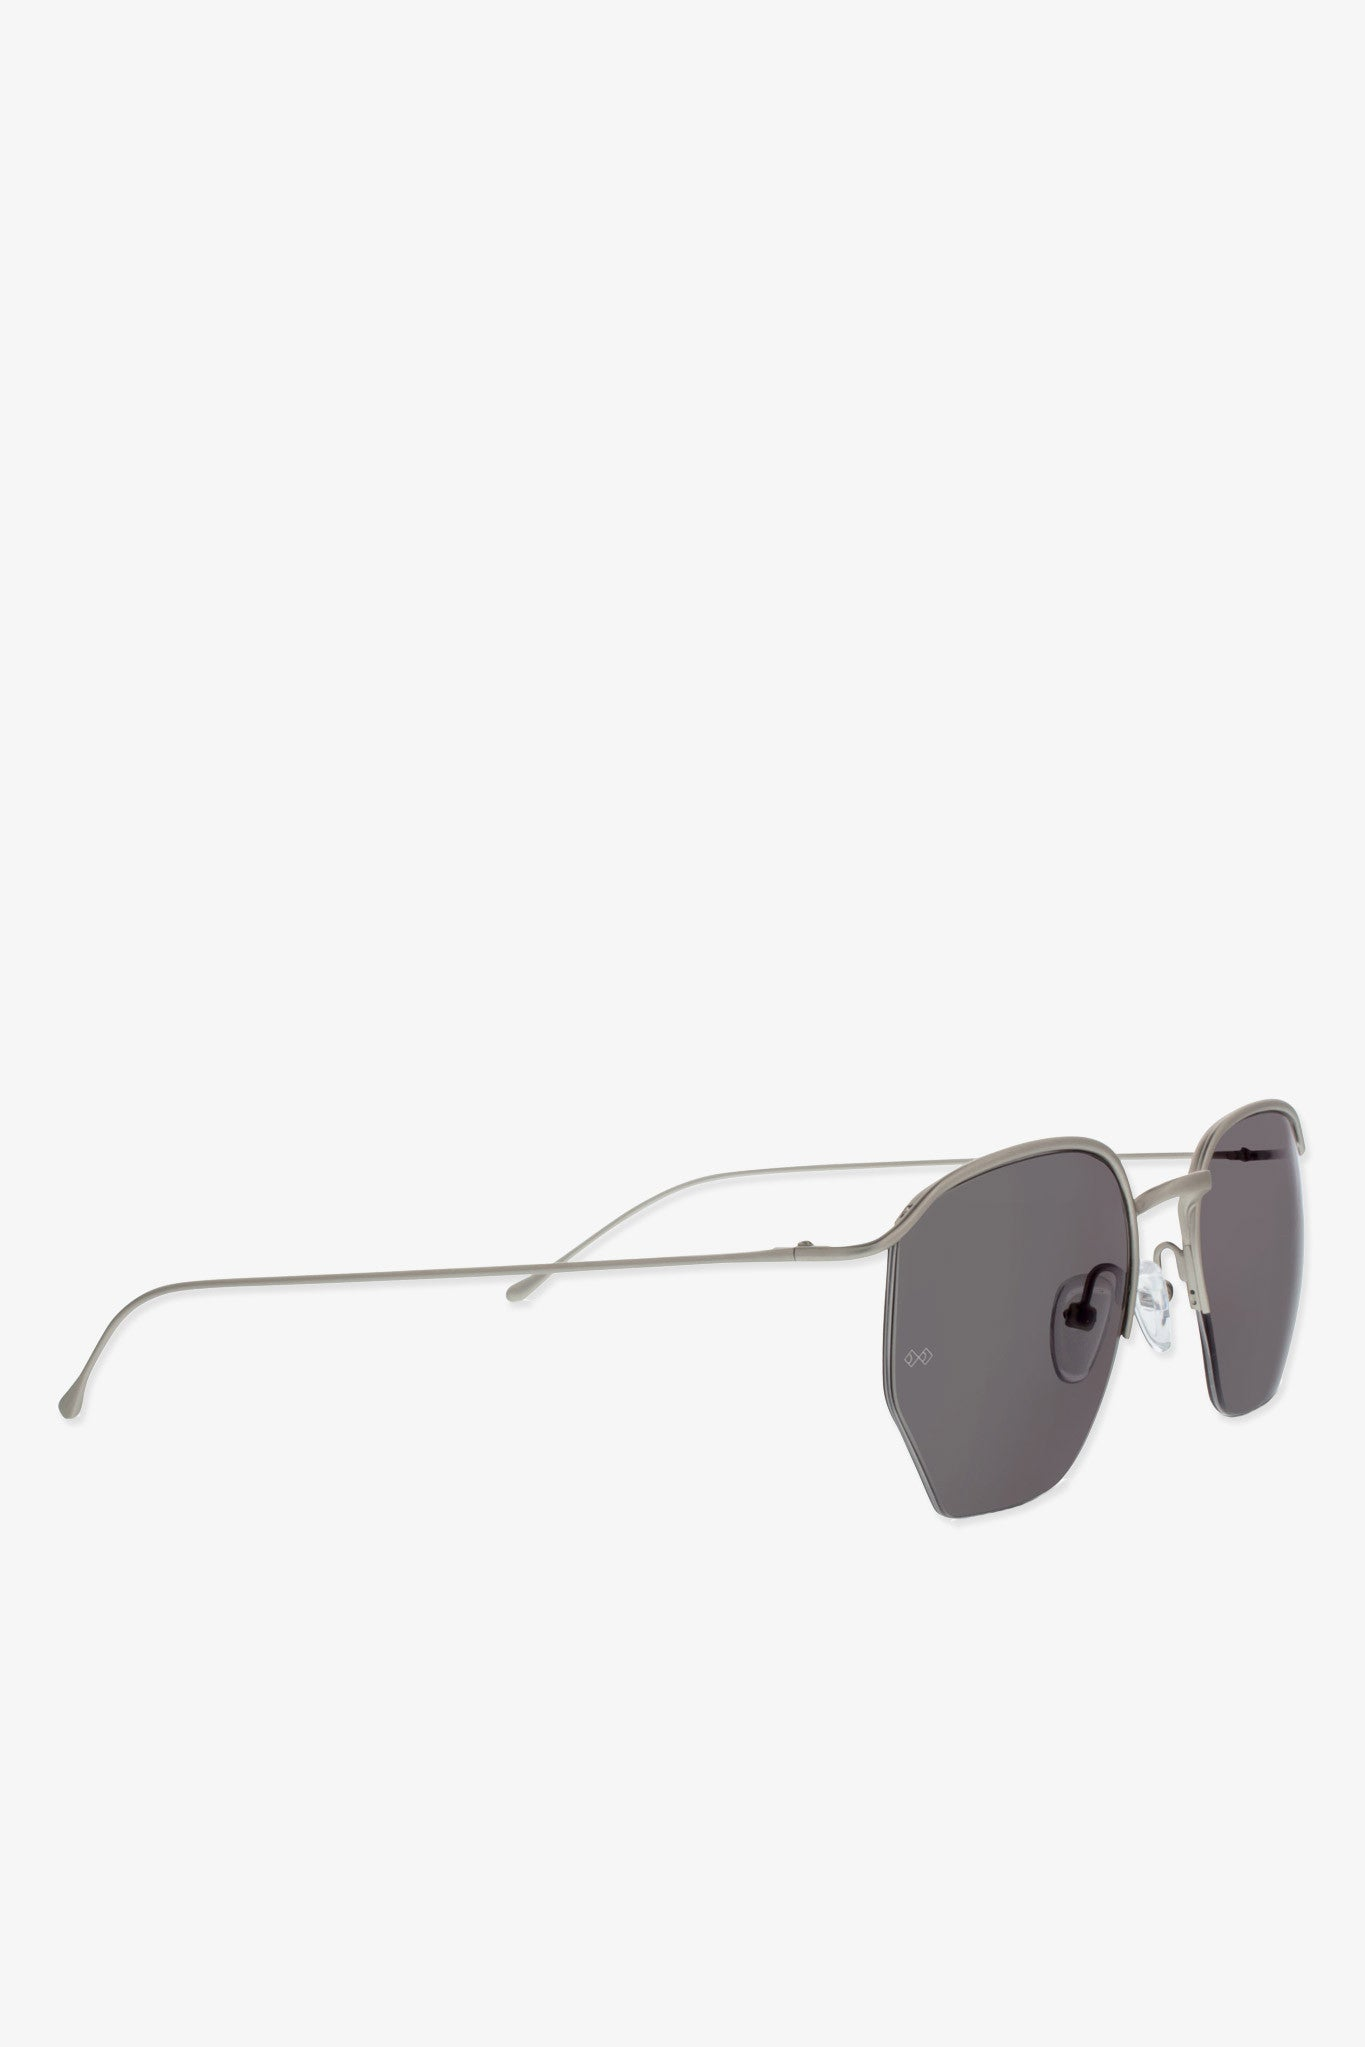 Geo I sunglasses in matte silver